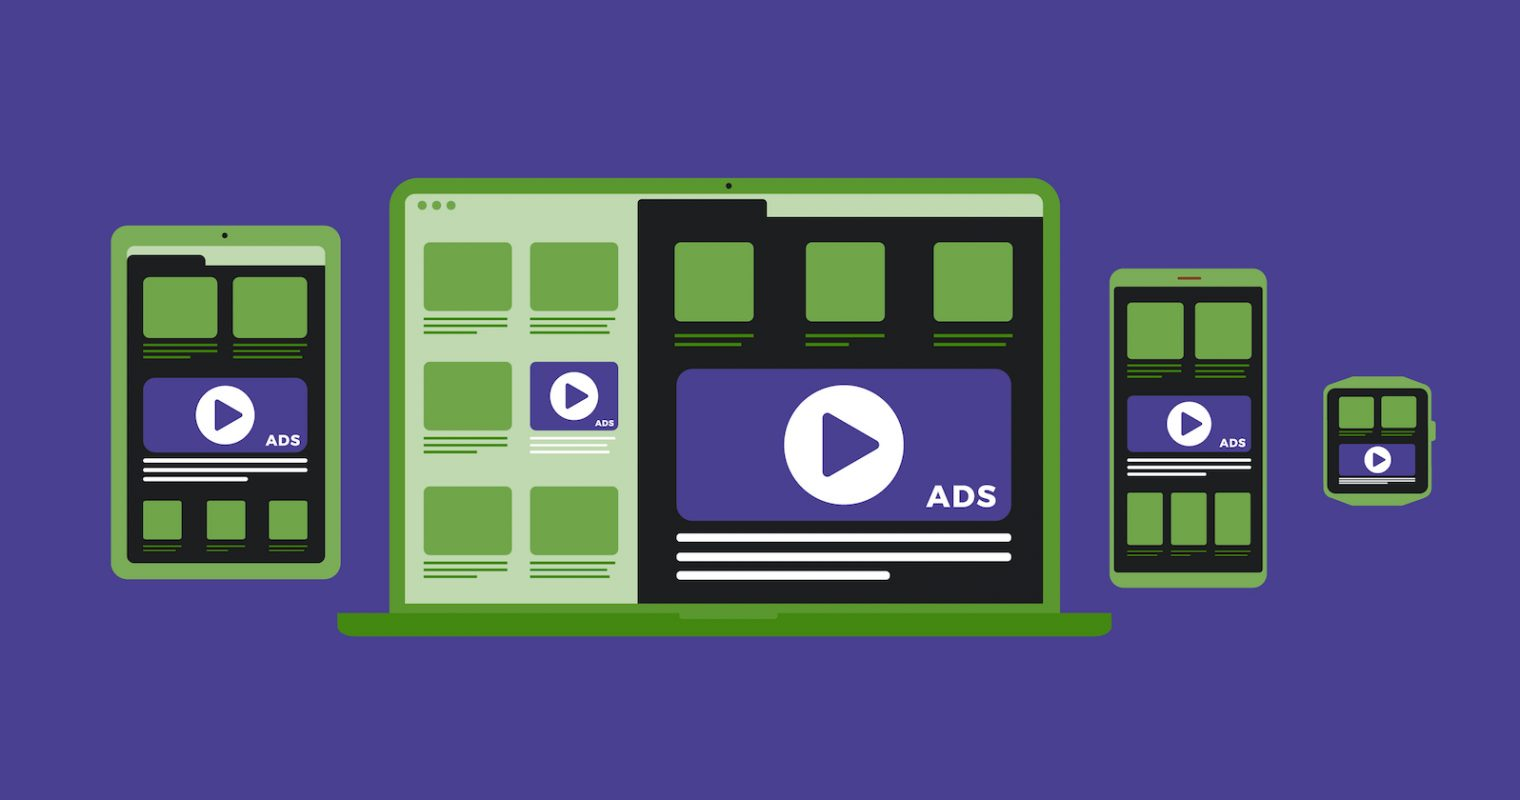 Why Now Is the Right Time to Advertise With Video (If You Aren't Already)